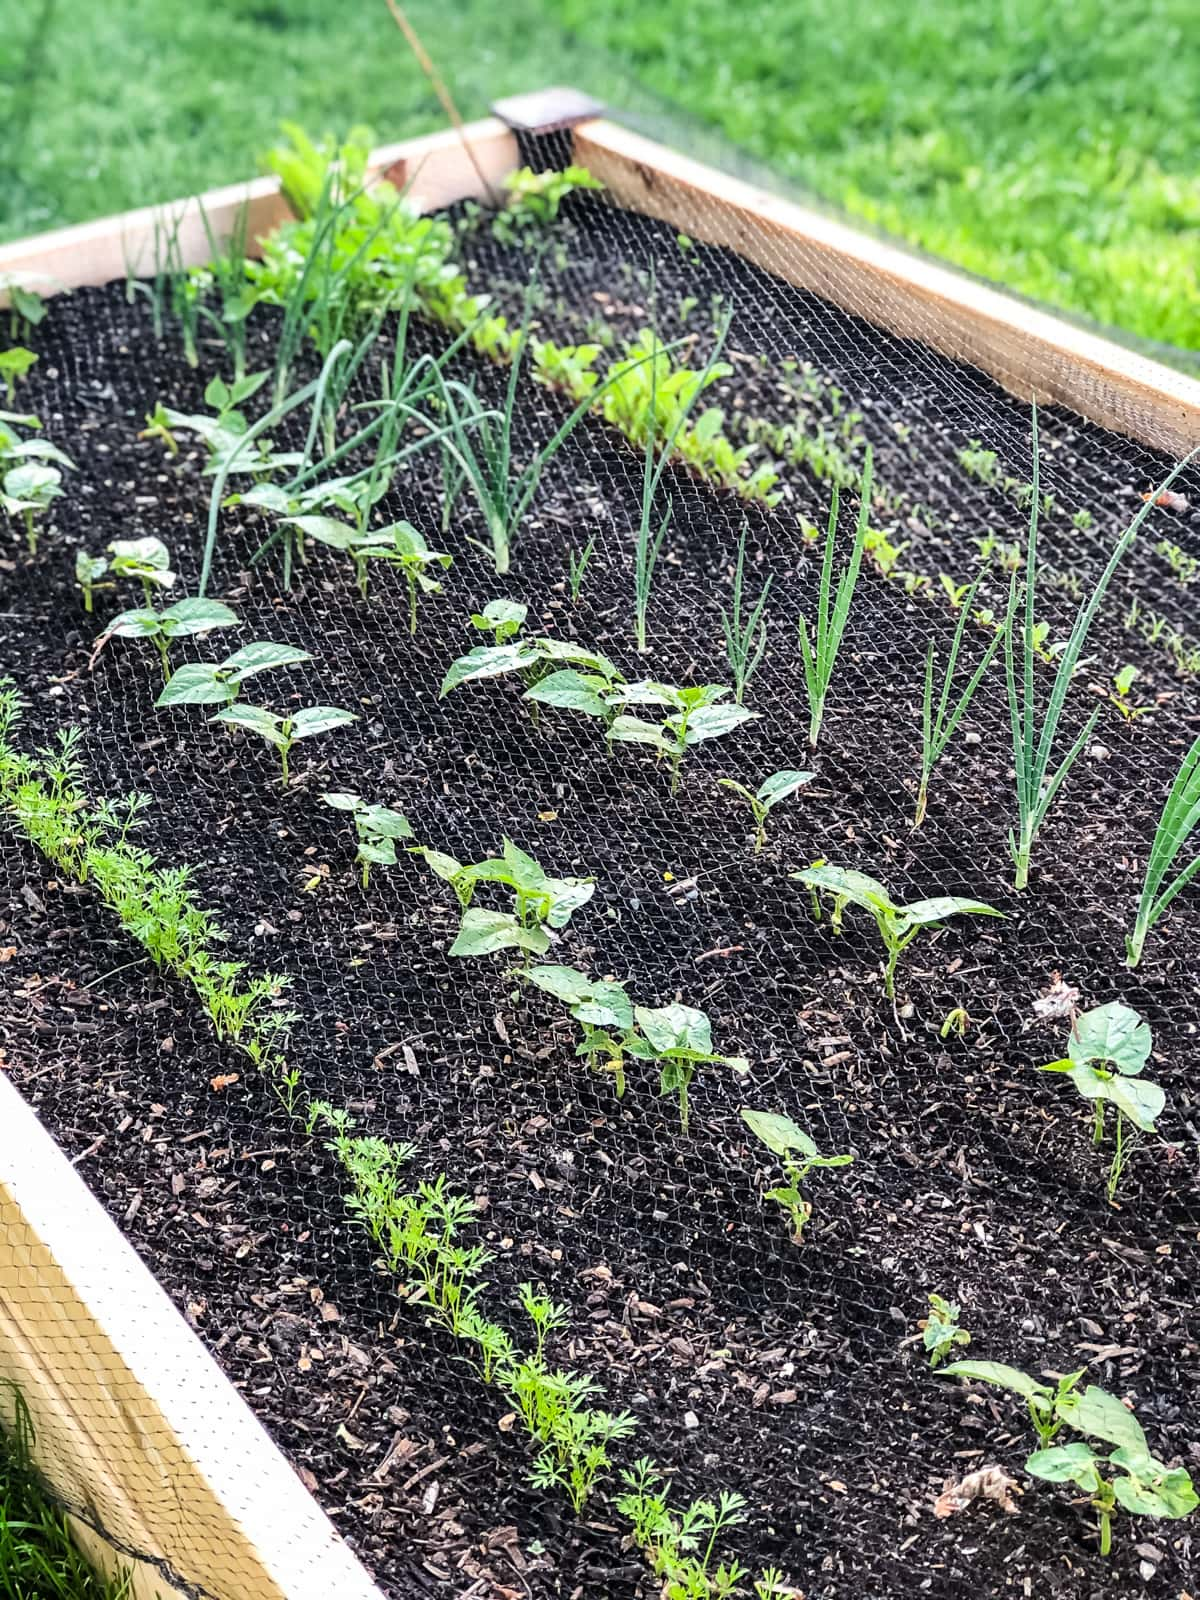 a small urban vegetable garden filled with young vegetable seedlings